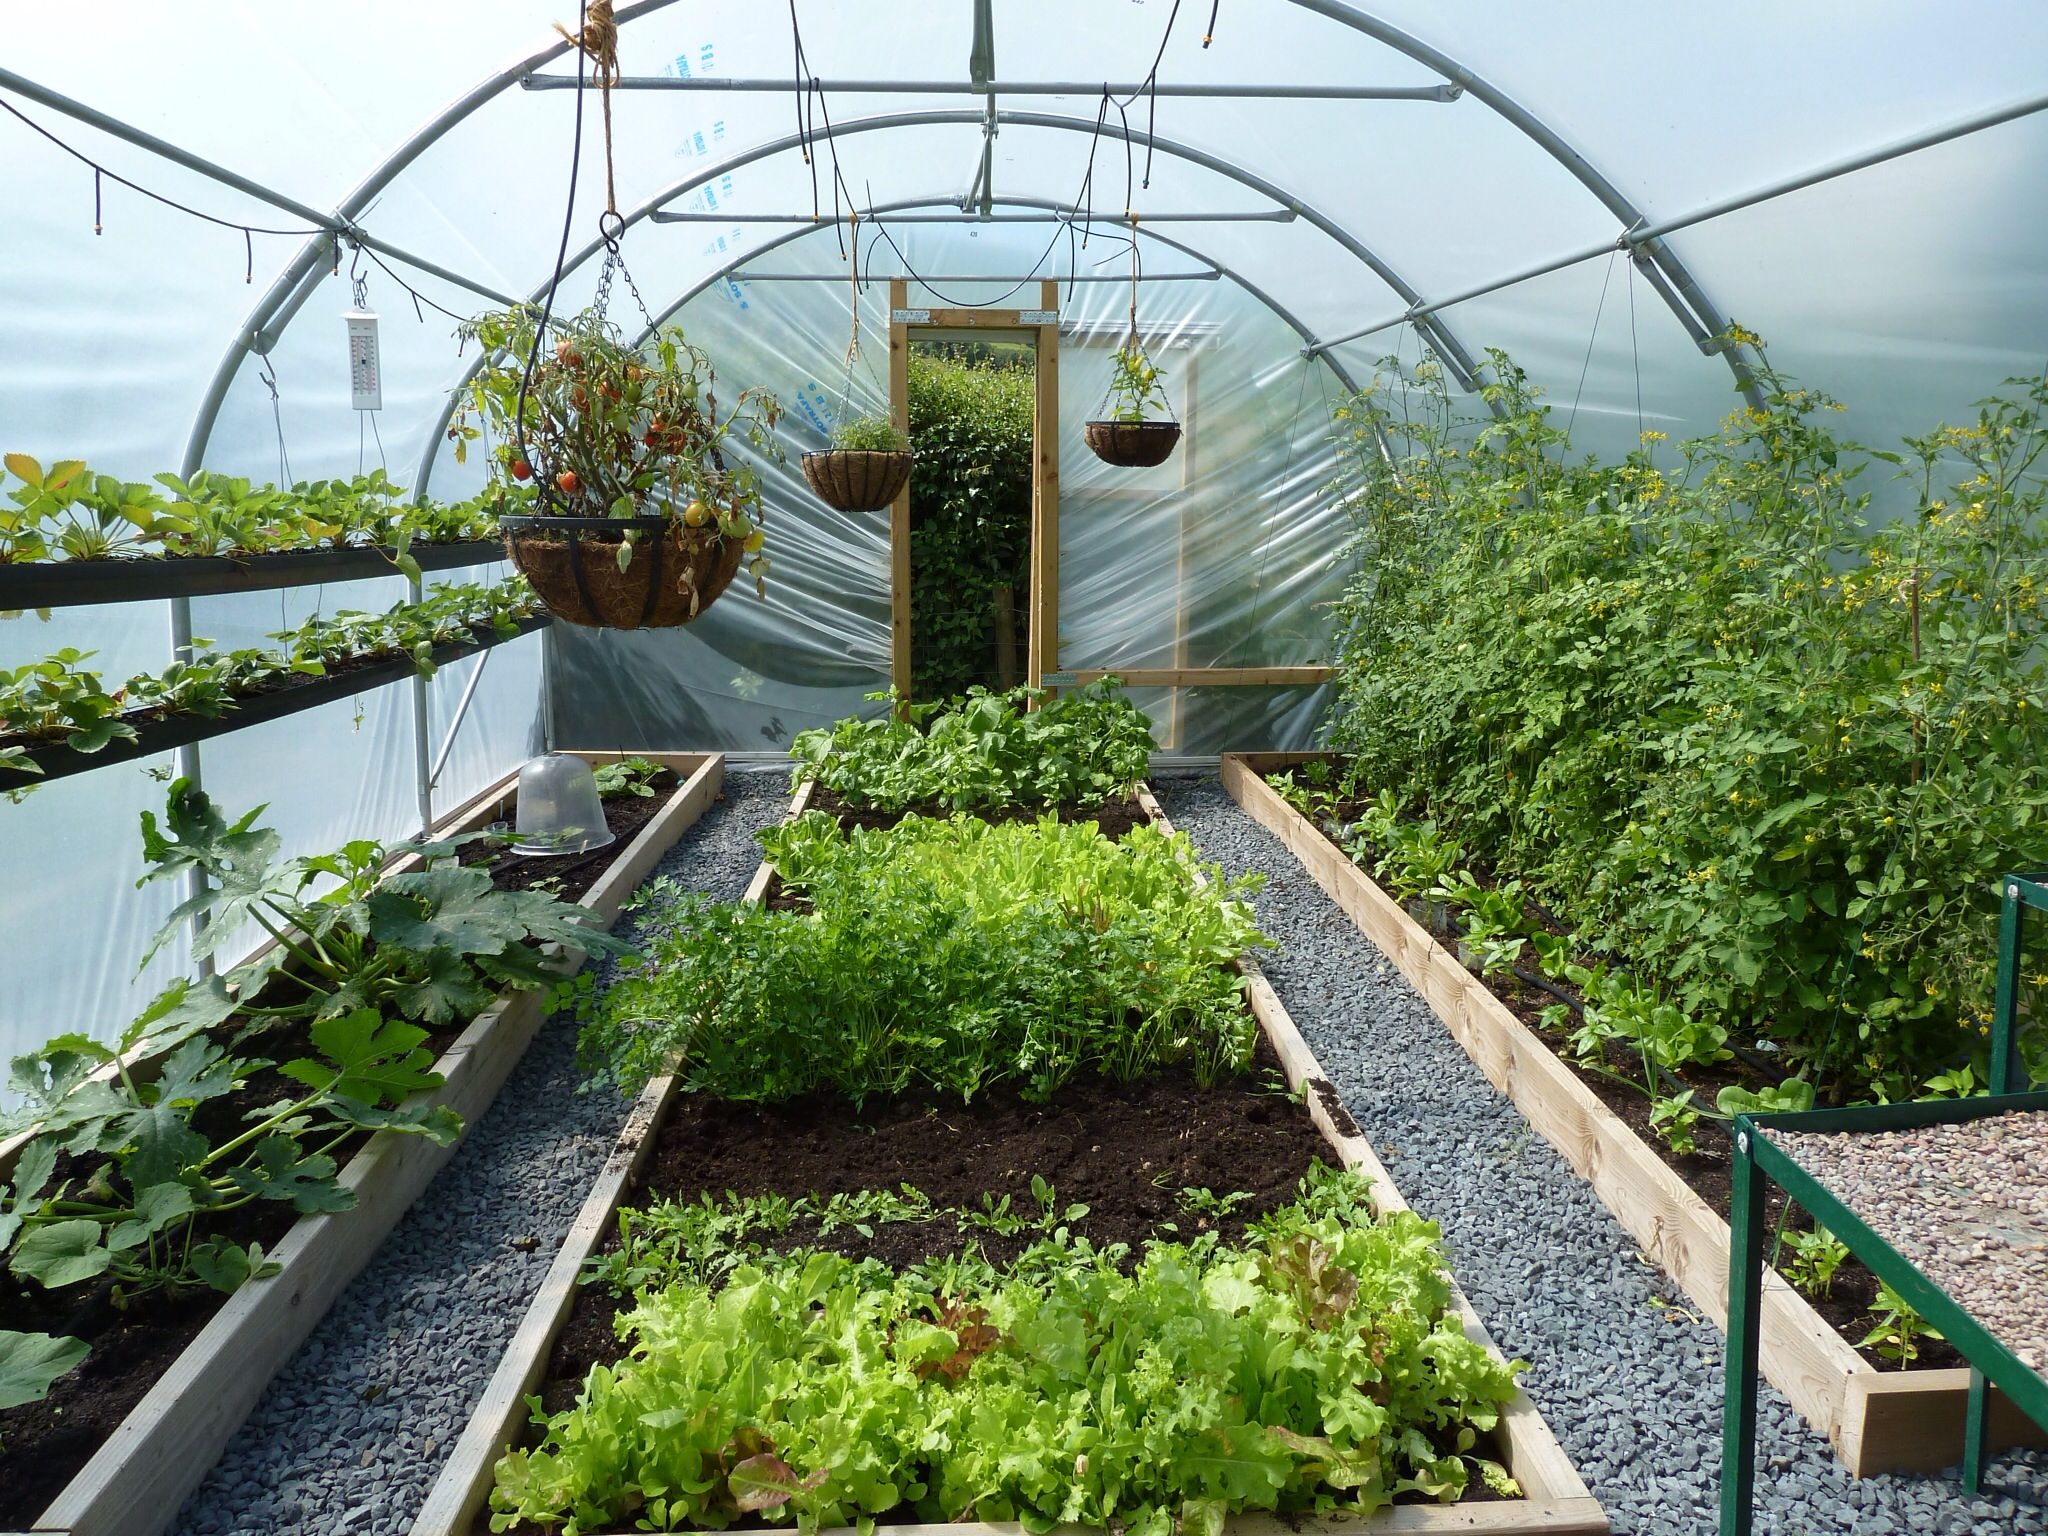 Use of a greenhouse to harbor vegetables